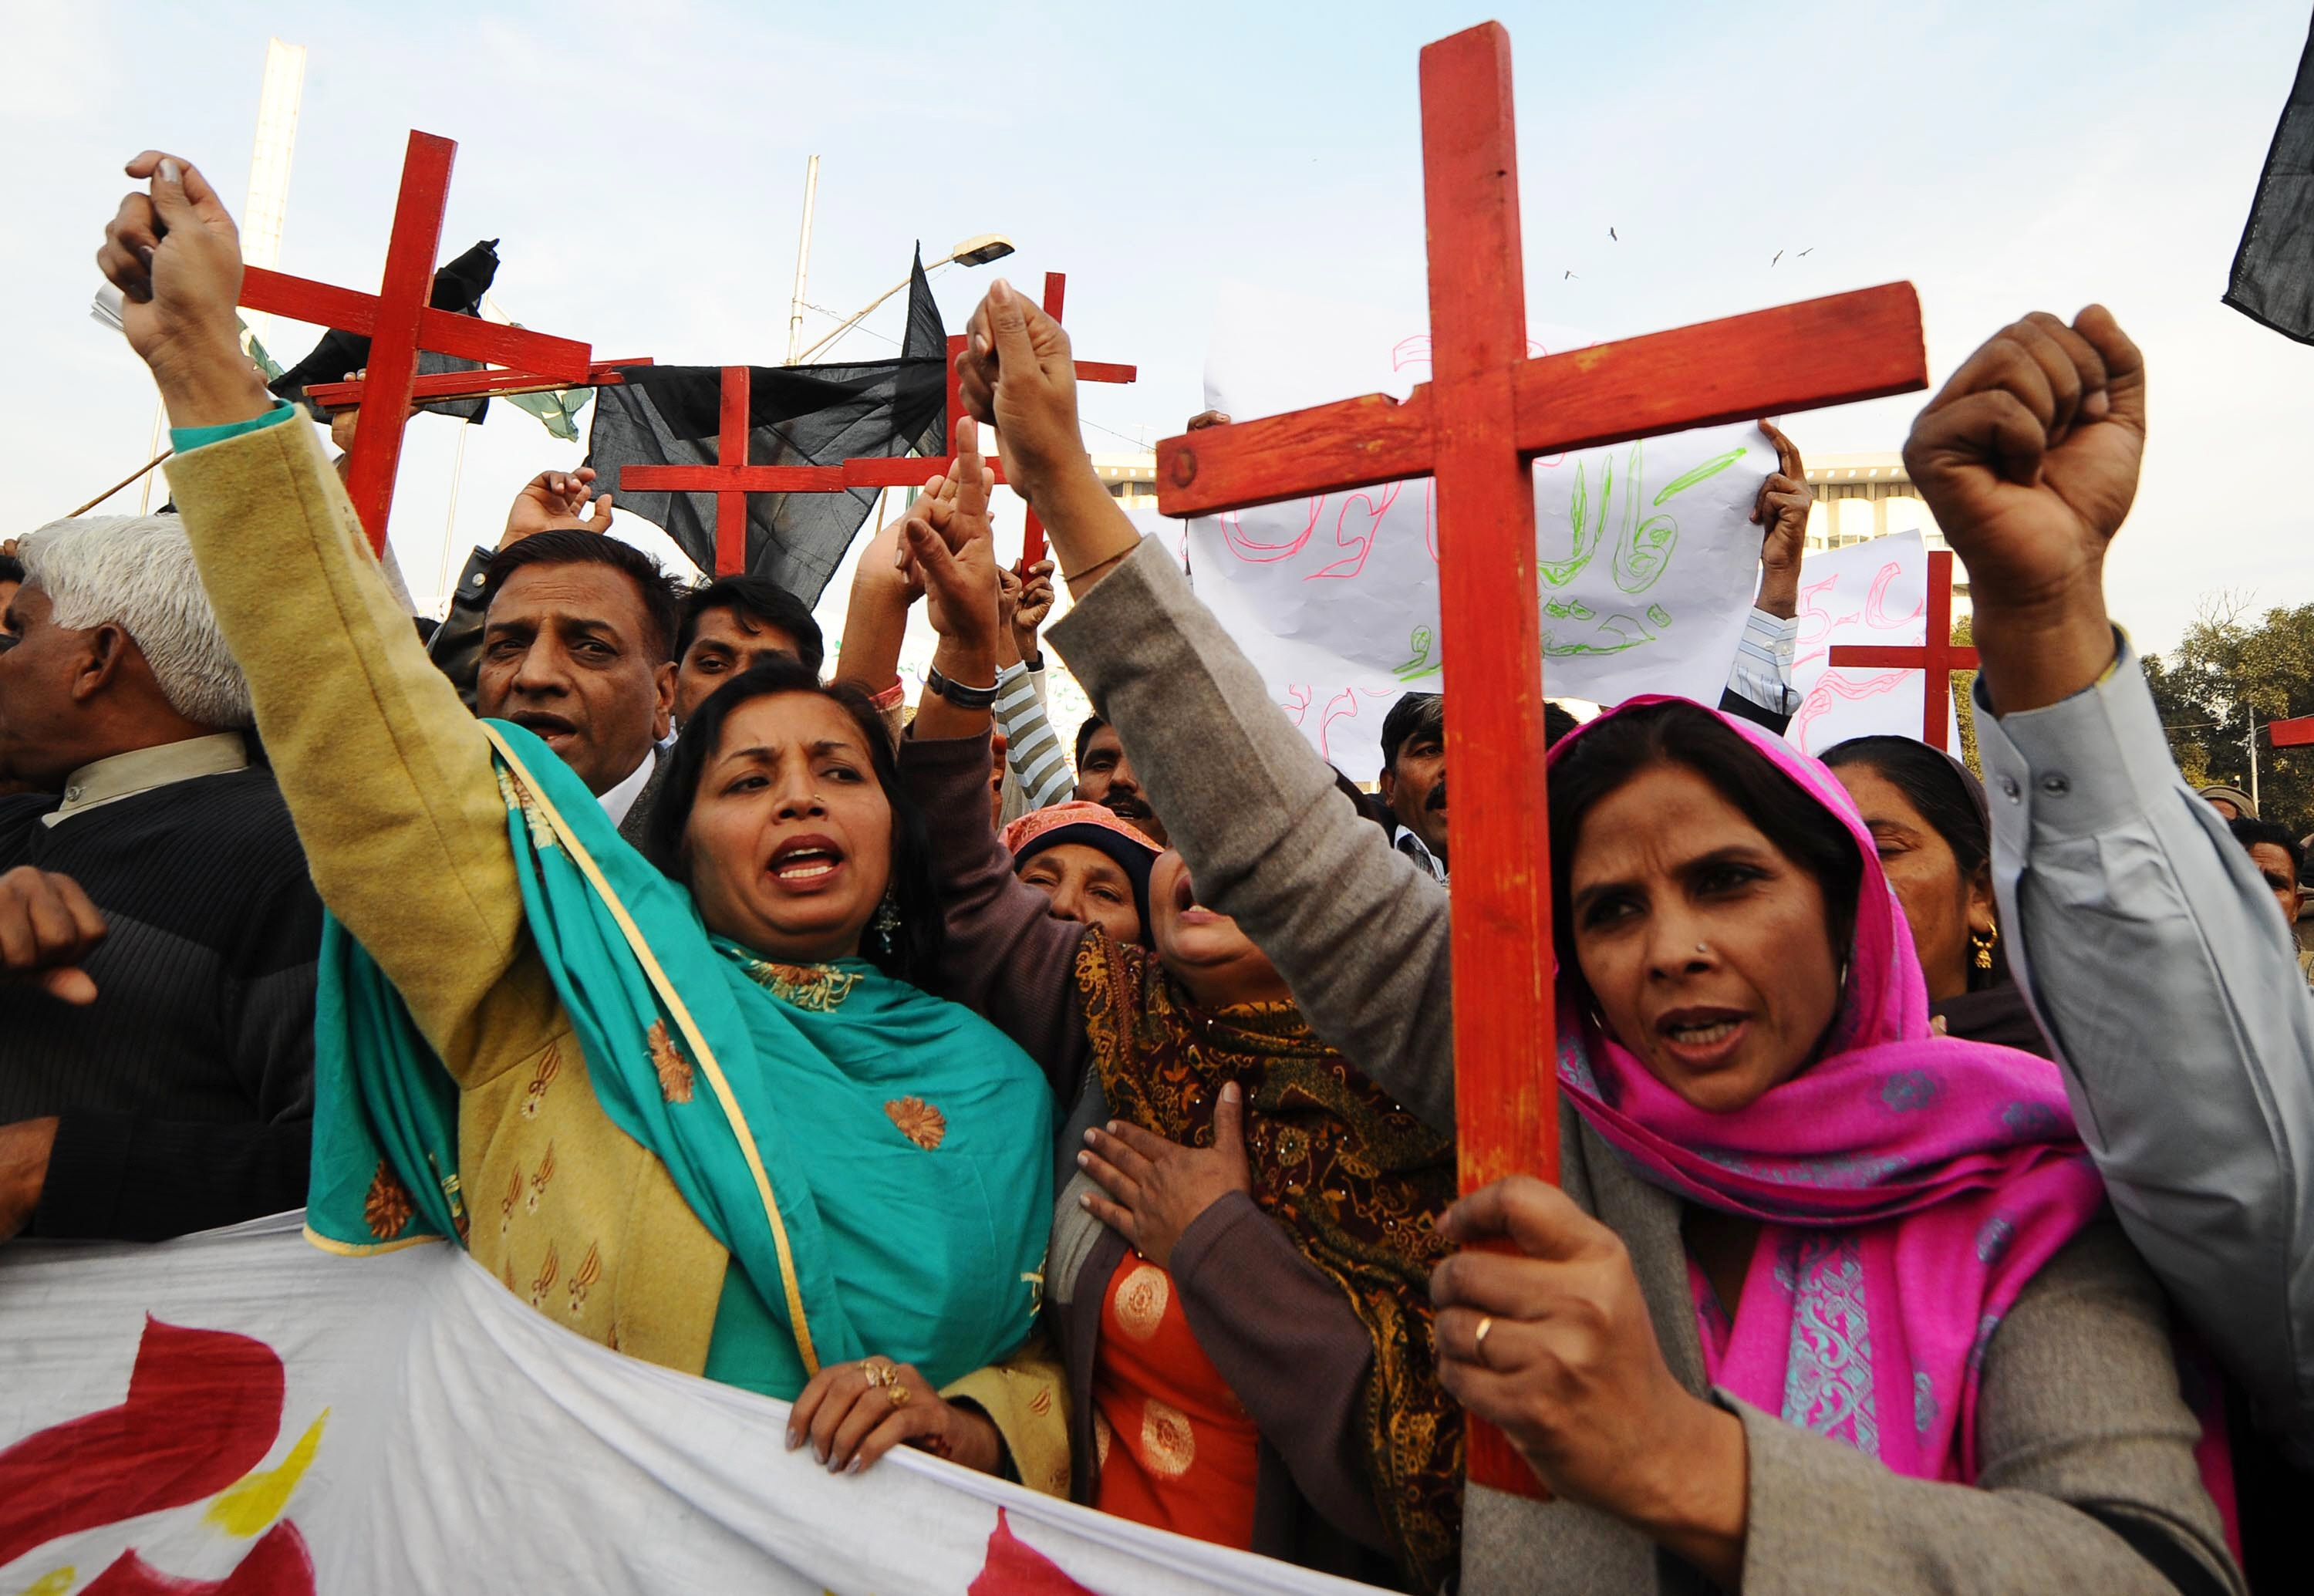 Members of the Pakistan Christian Democratic alliance protest in support of Asia Bibi in 2010.